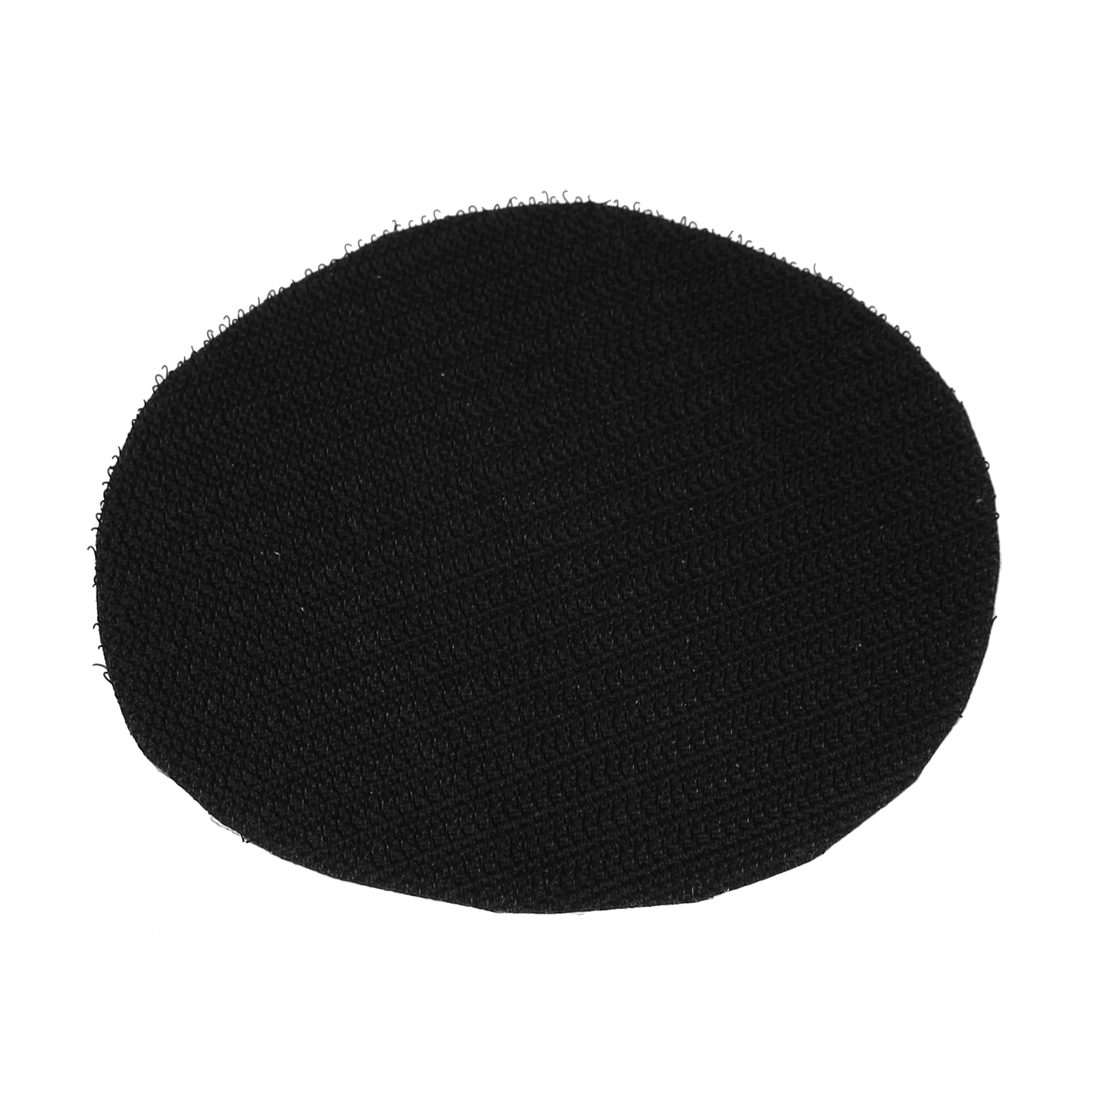 "6"" 150mm Diameter Round Velvet Sanding Polishing Pad Black"